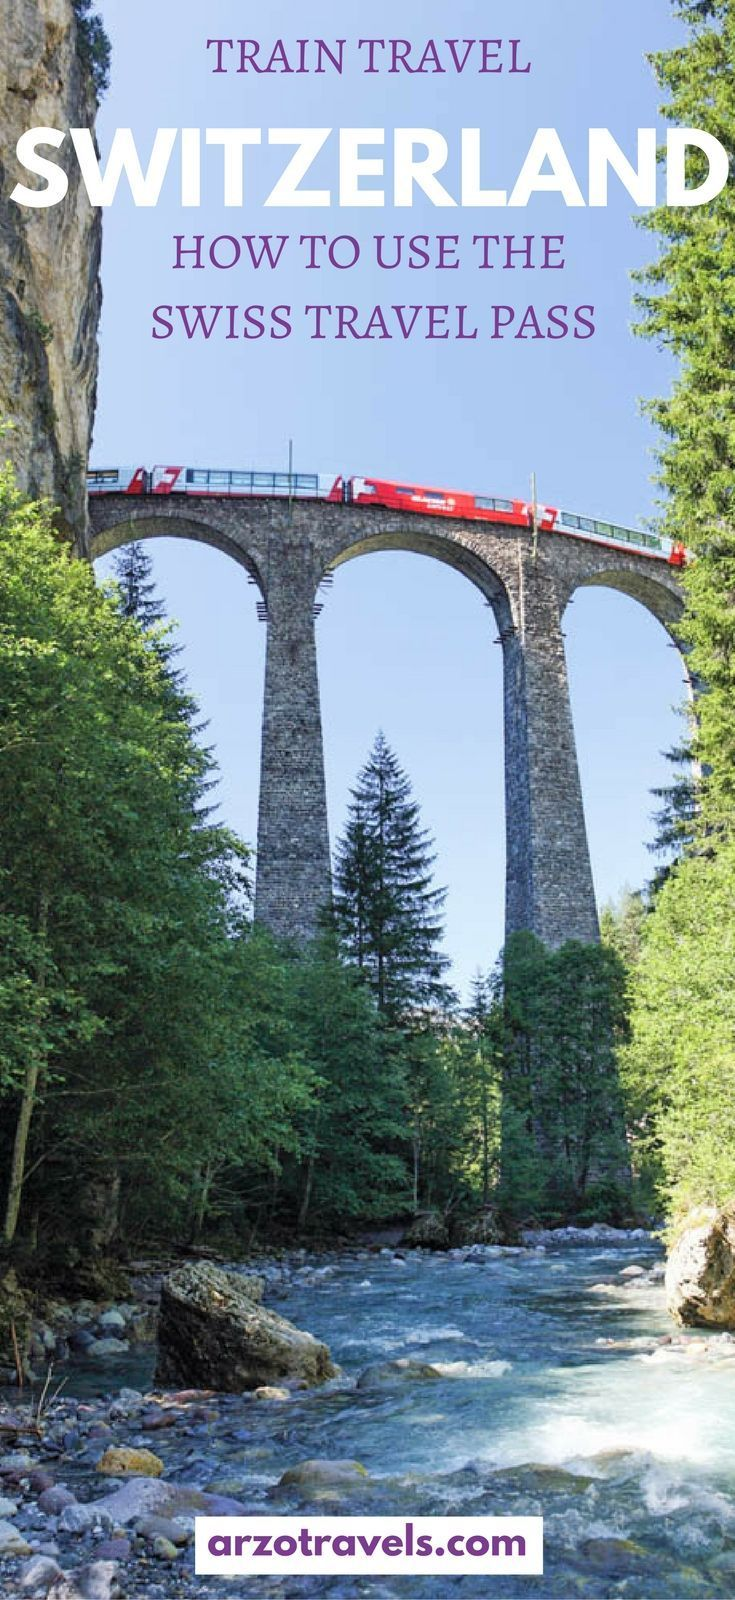 Switzerland and Swiss Travel Pass: All you need to know about public transportation and travel travel in Switzerland and the Swiss Travel Pass.